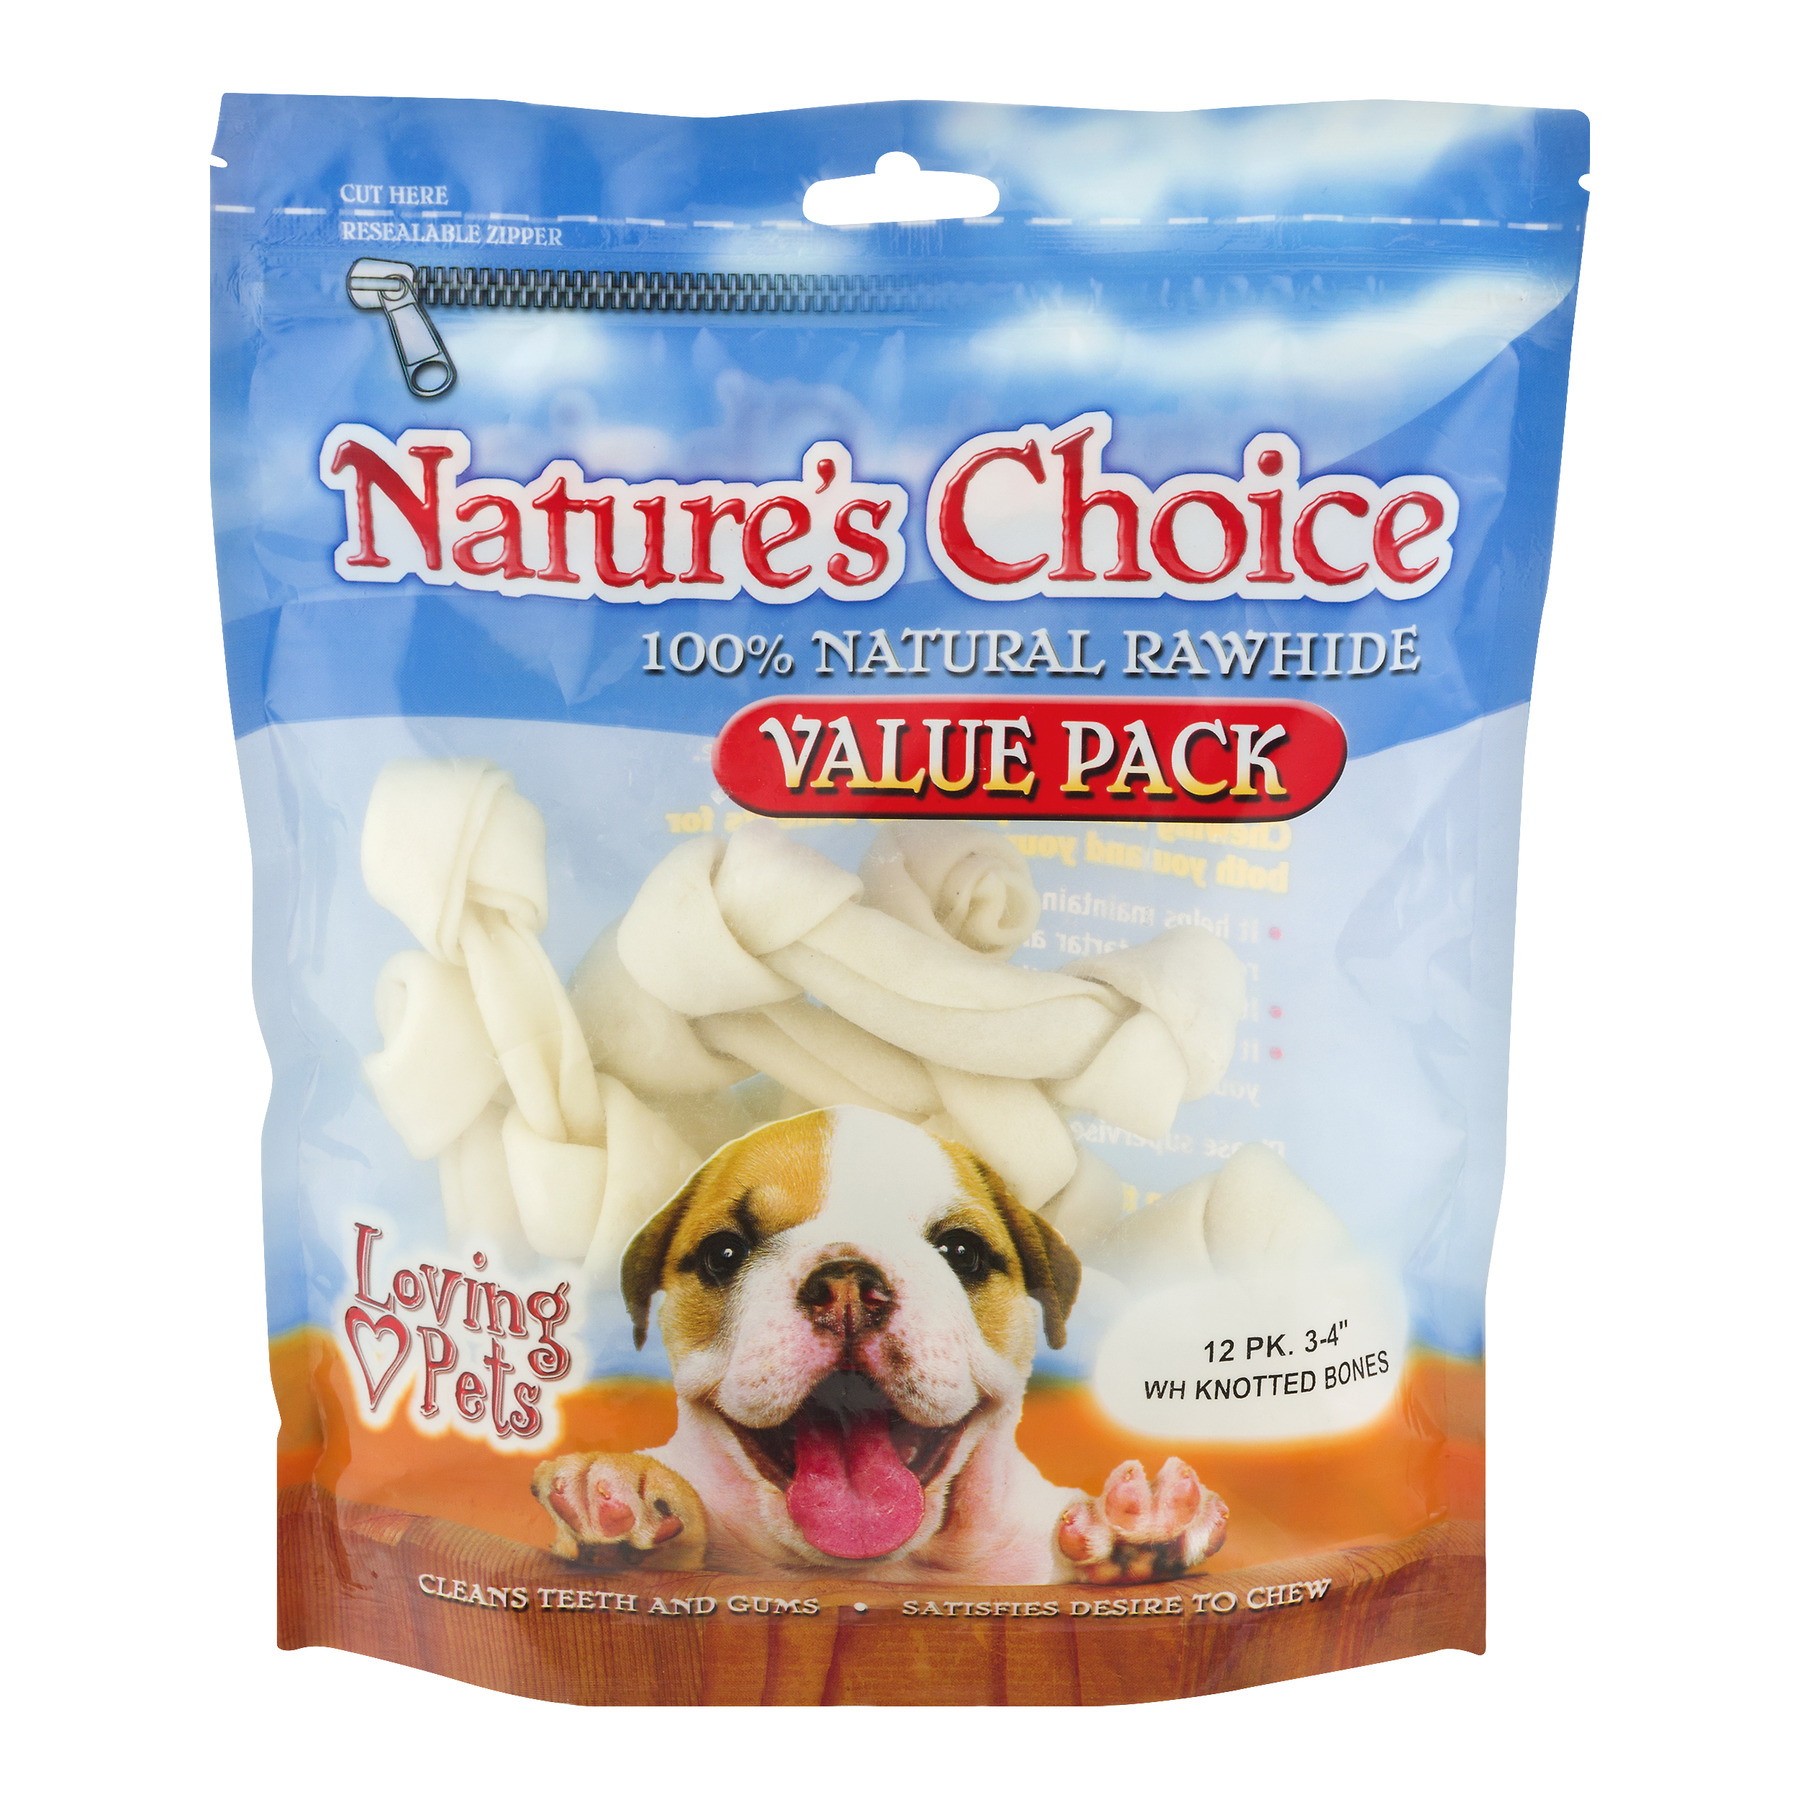 Nature's Choice 100% Natural Rawhide Value Pack, 12.0 PACK